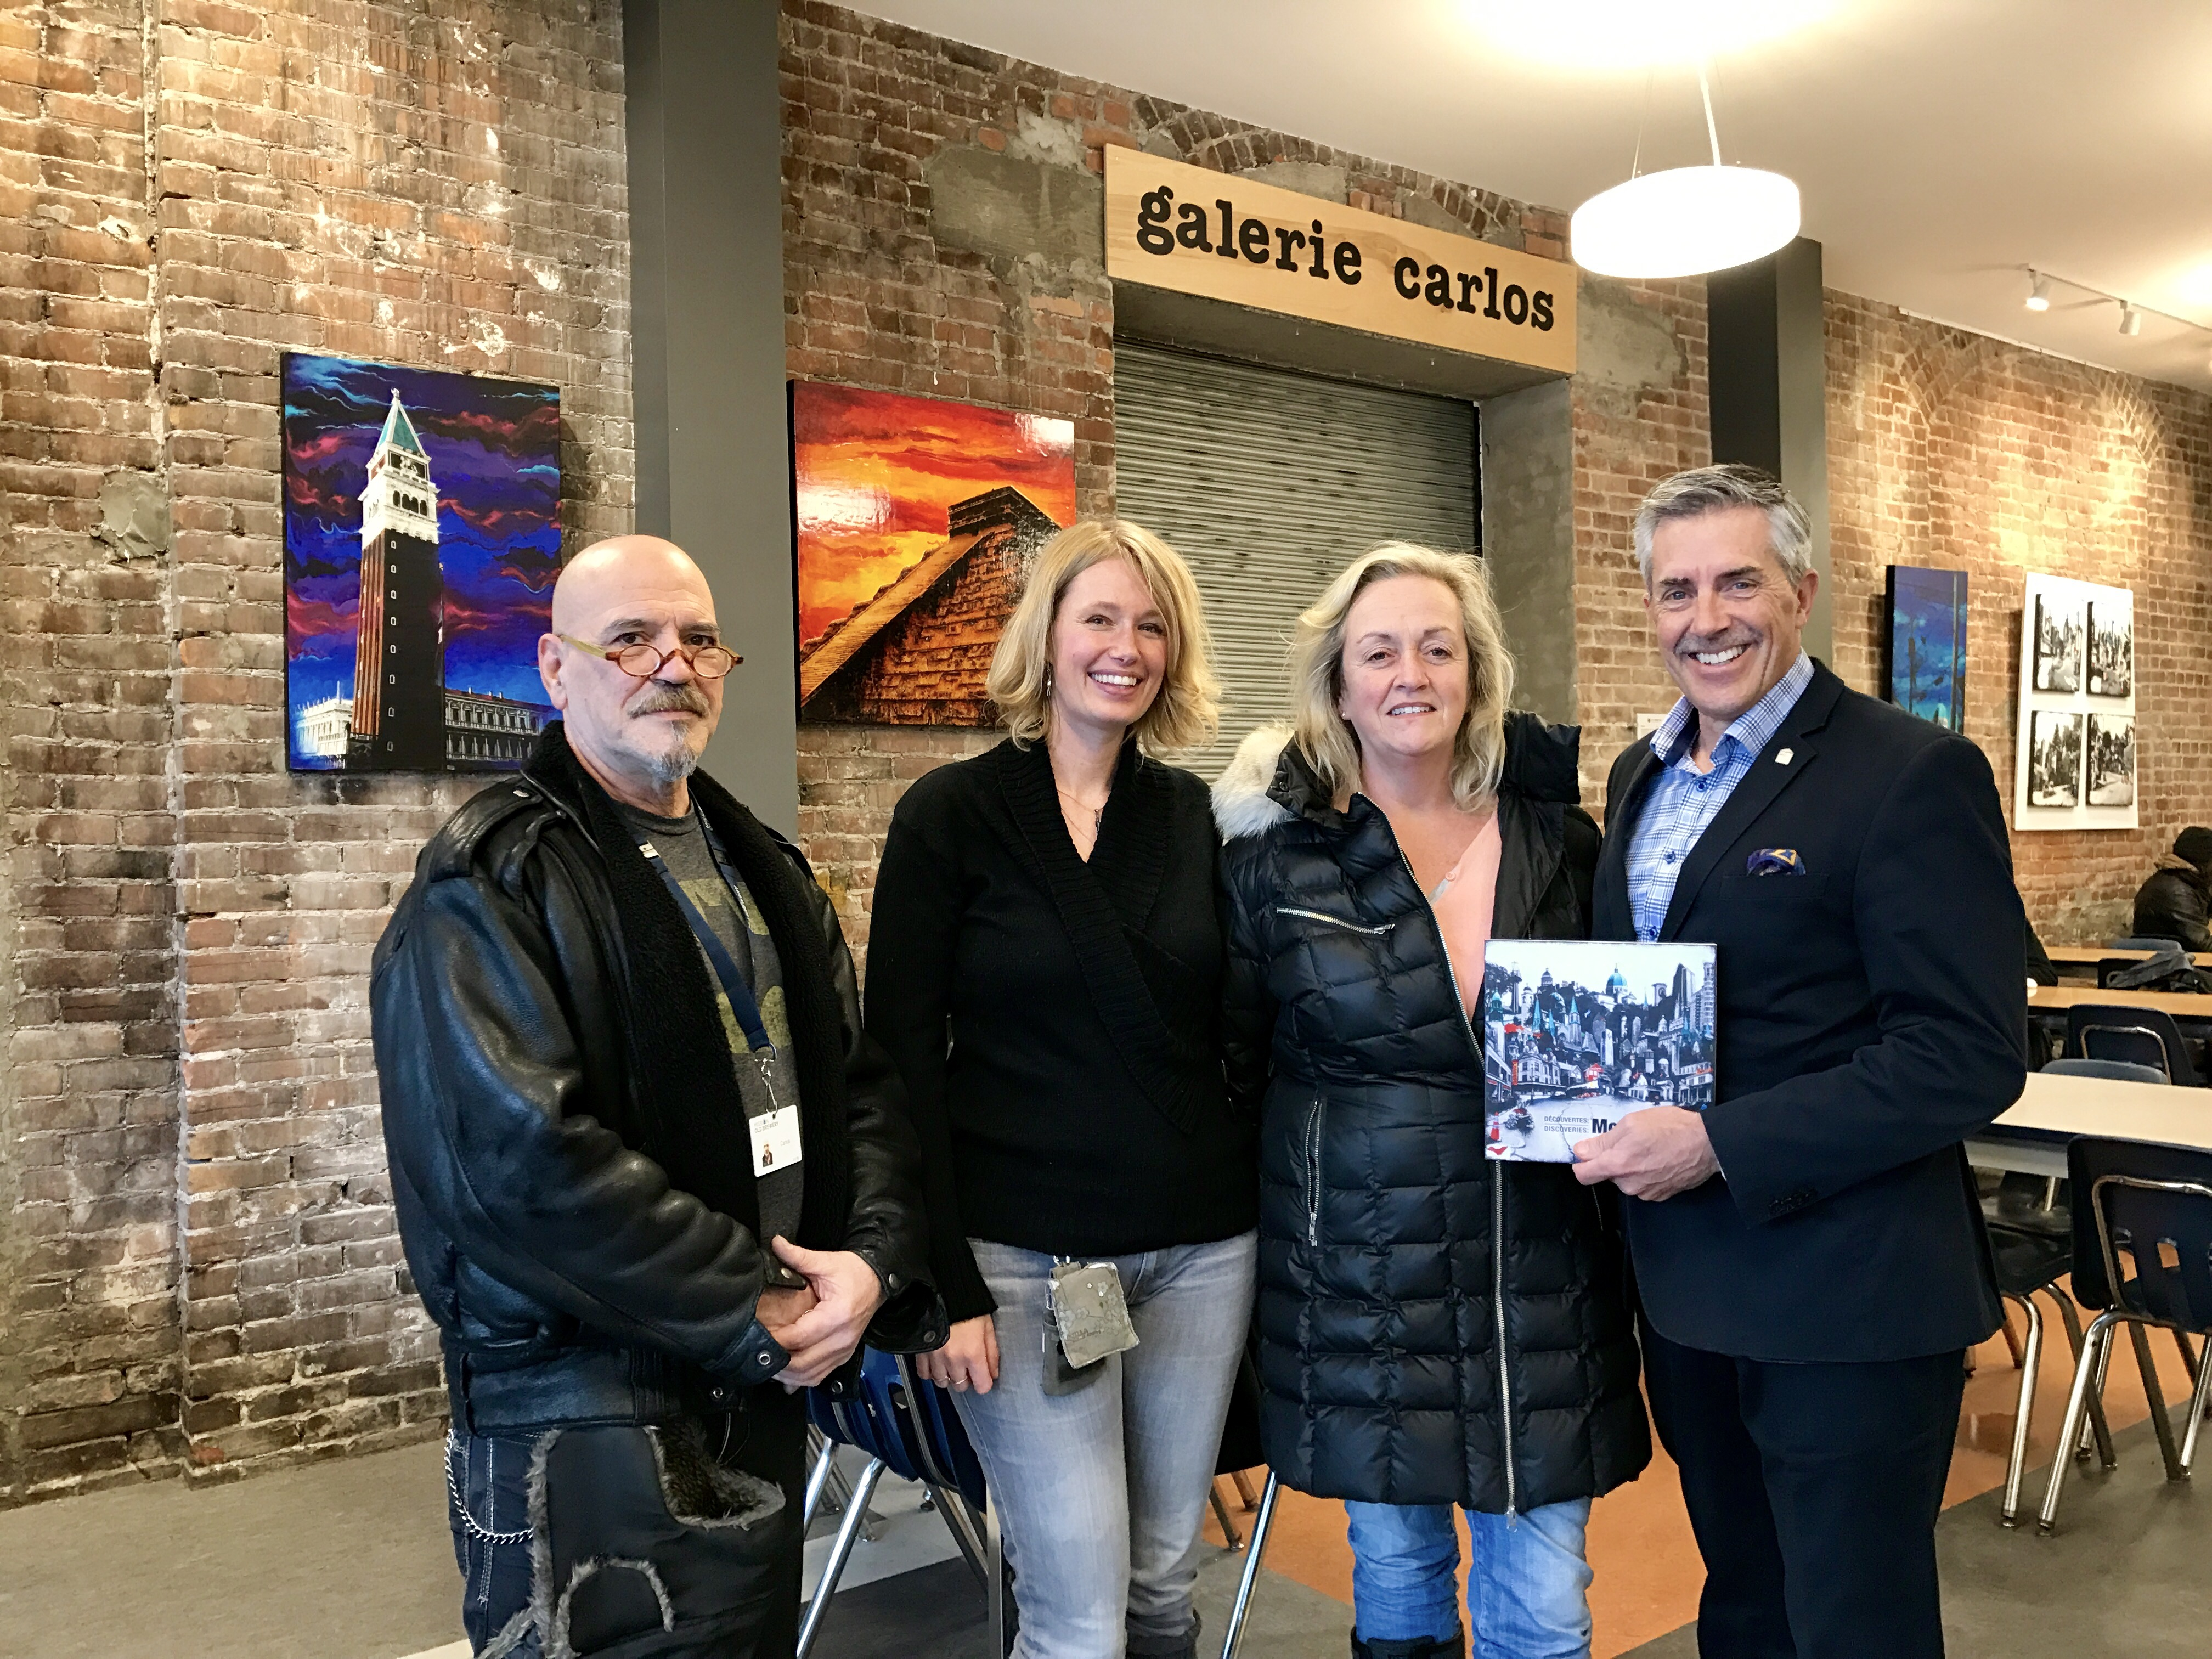 Carlos Anglarill, counselor at the Mission and founder of Gallery Carlos, Denise Buisman Pilger, contributing artist, Karen Hosker, contributing artist and Gallerie Carlos curator and Matthew Pearce, President and CEO of Old Brewery Mission.